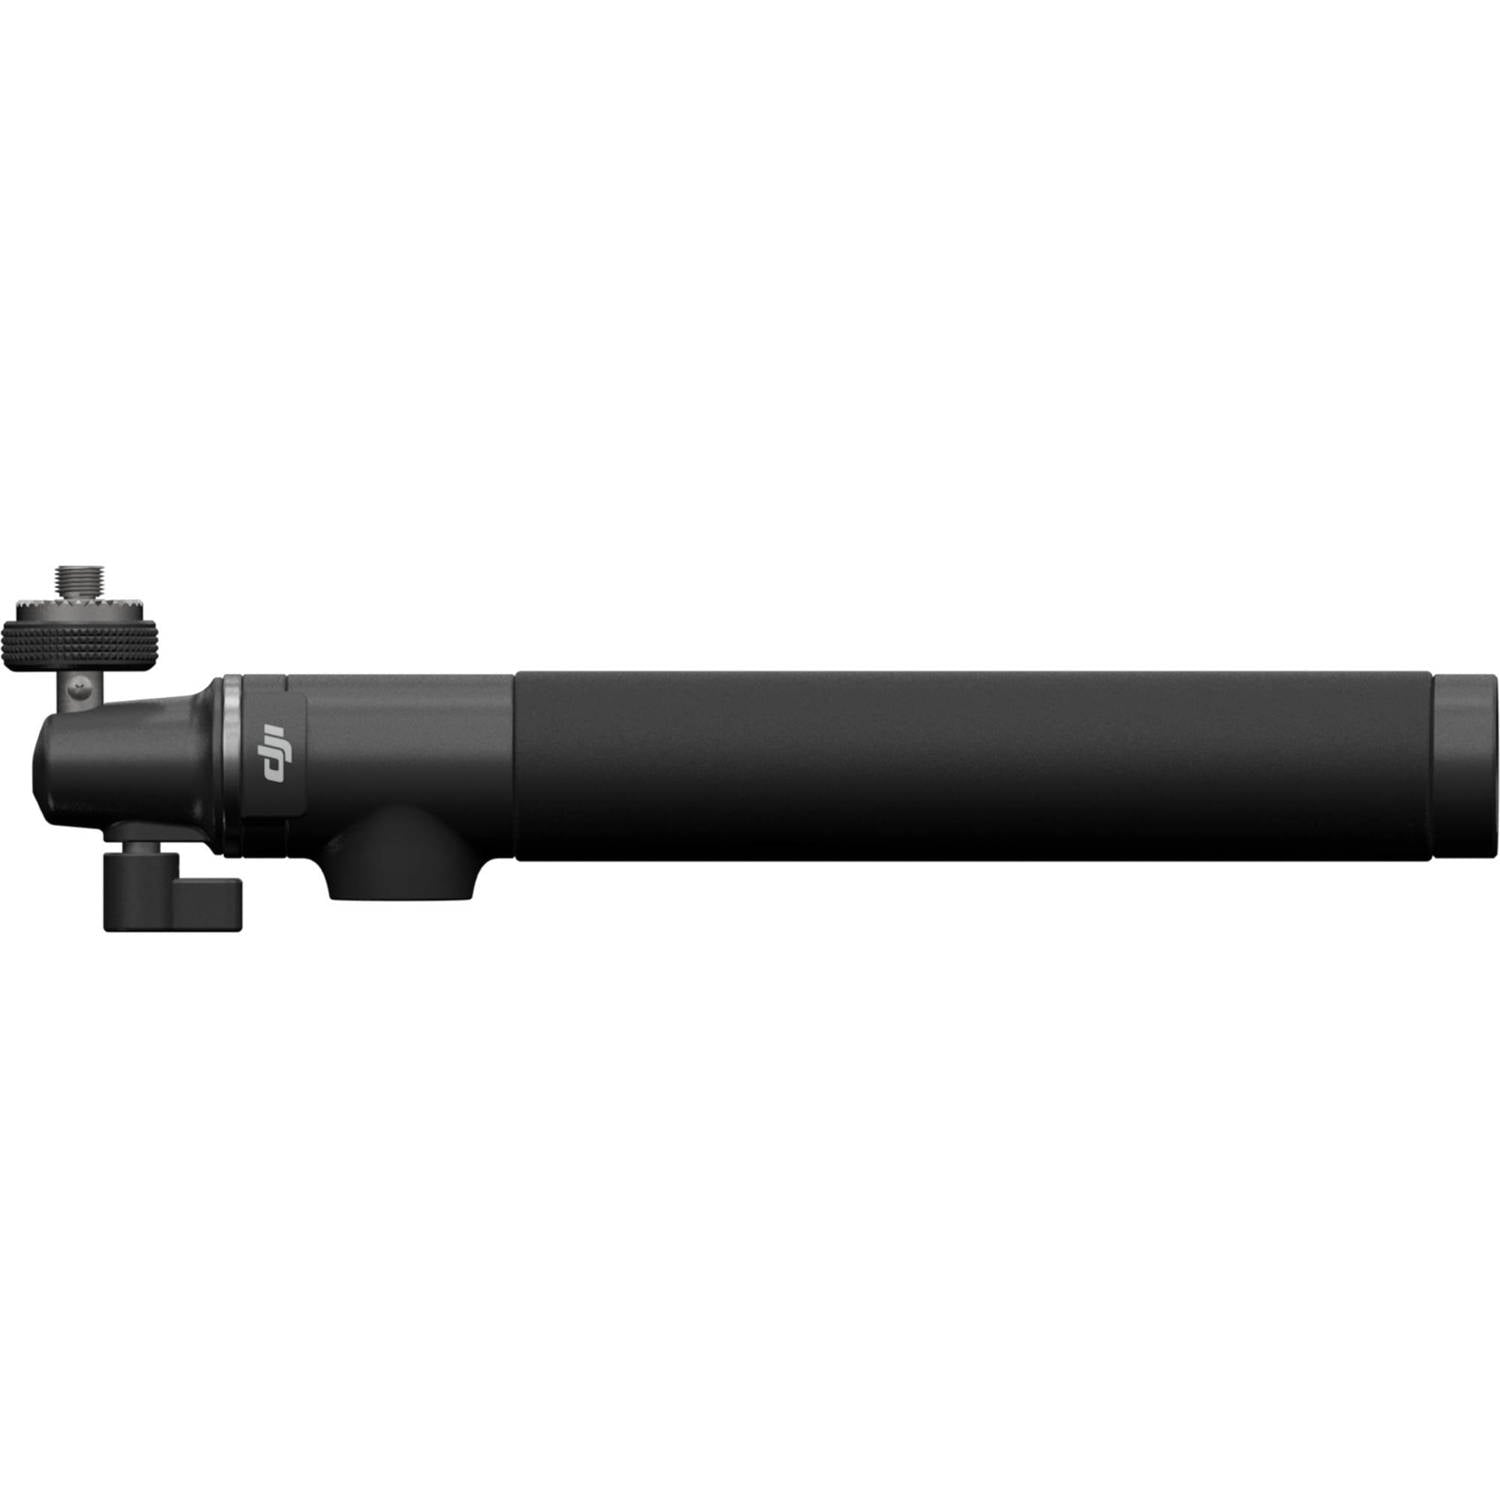 DJI Osmo Extension Stick Spare Part NO.1